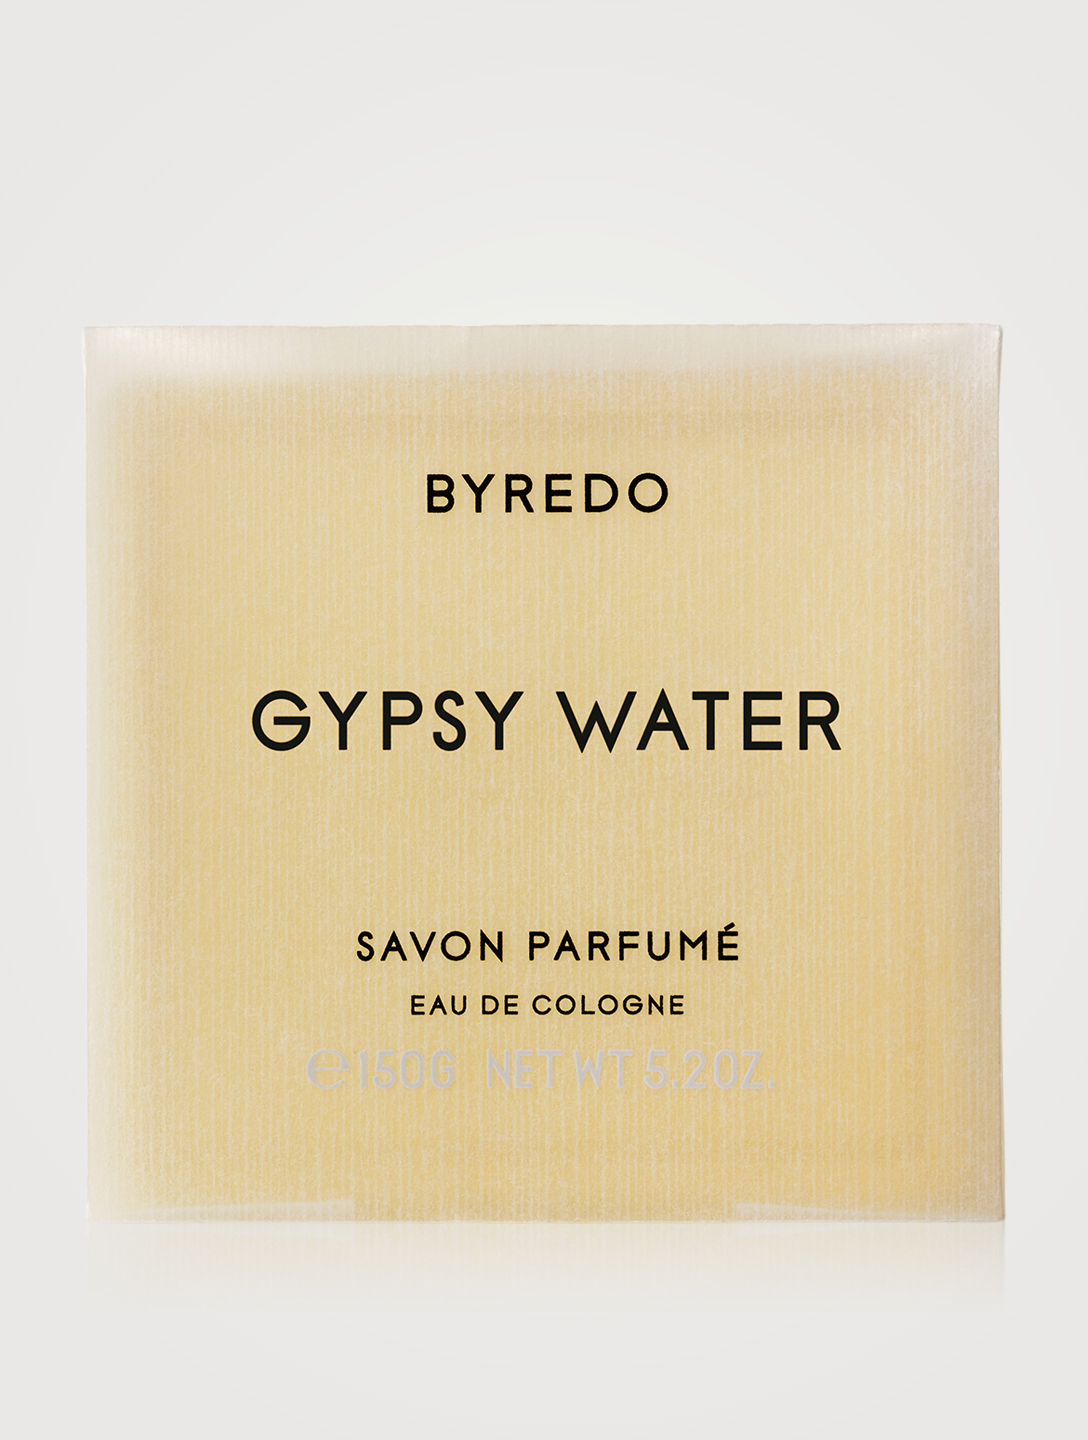 BYREDO Gypsy Water Cologne Soap Bar Beauty